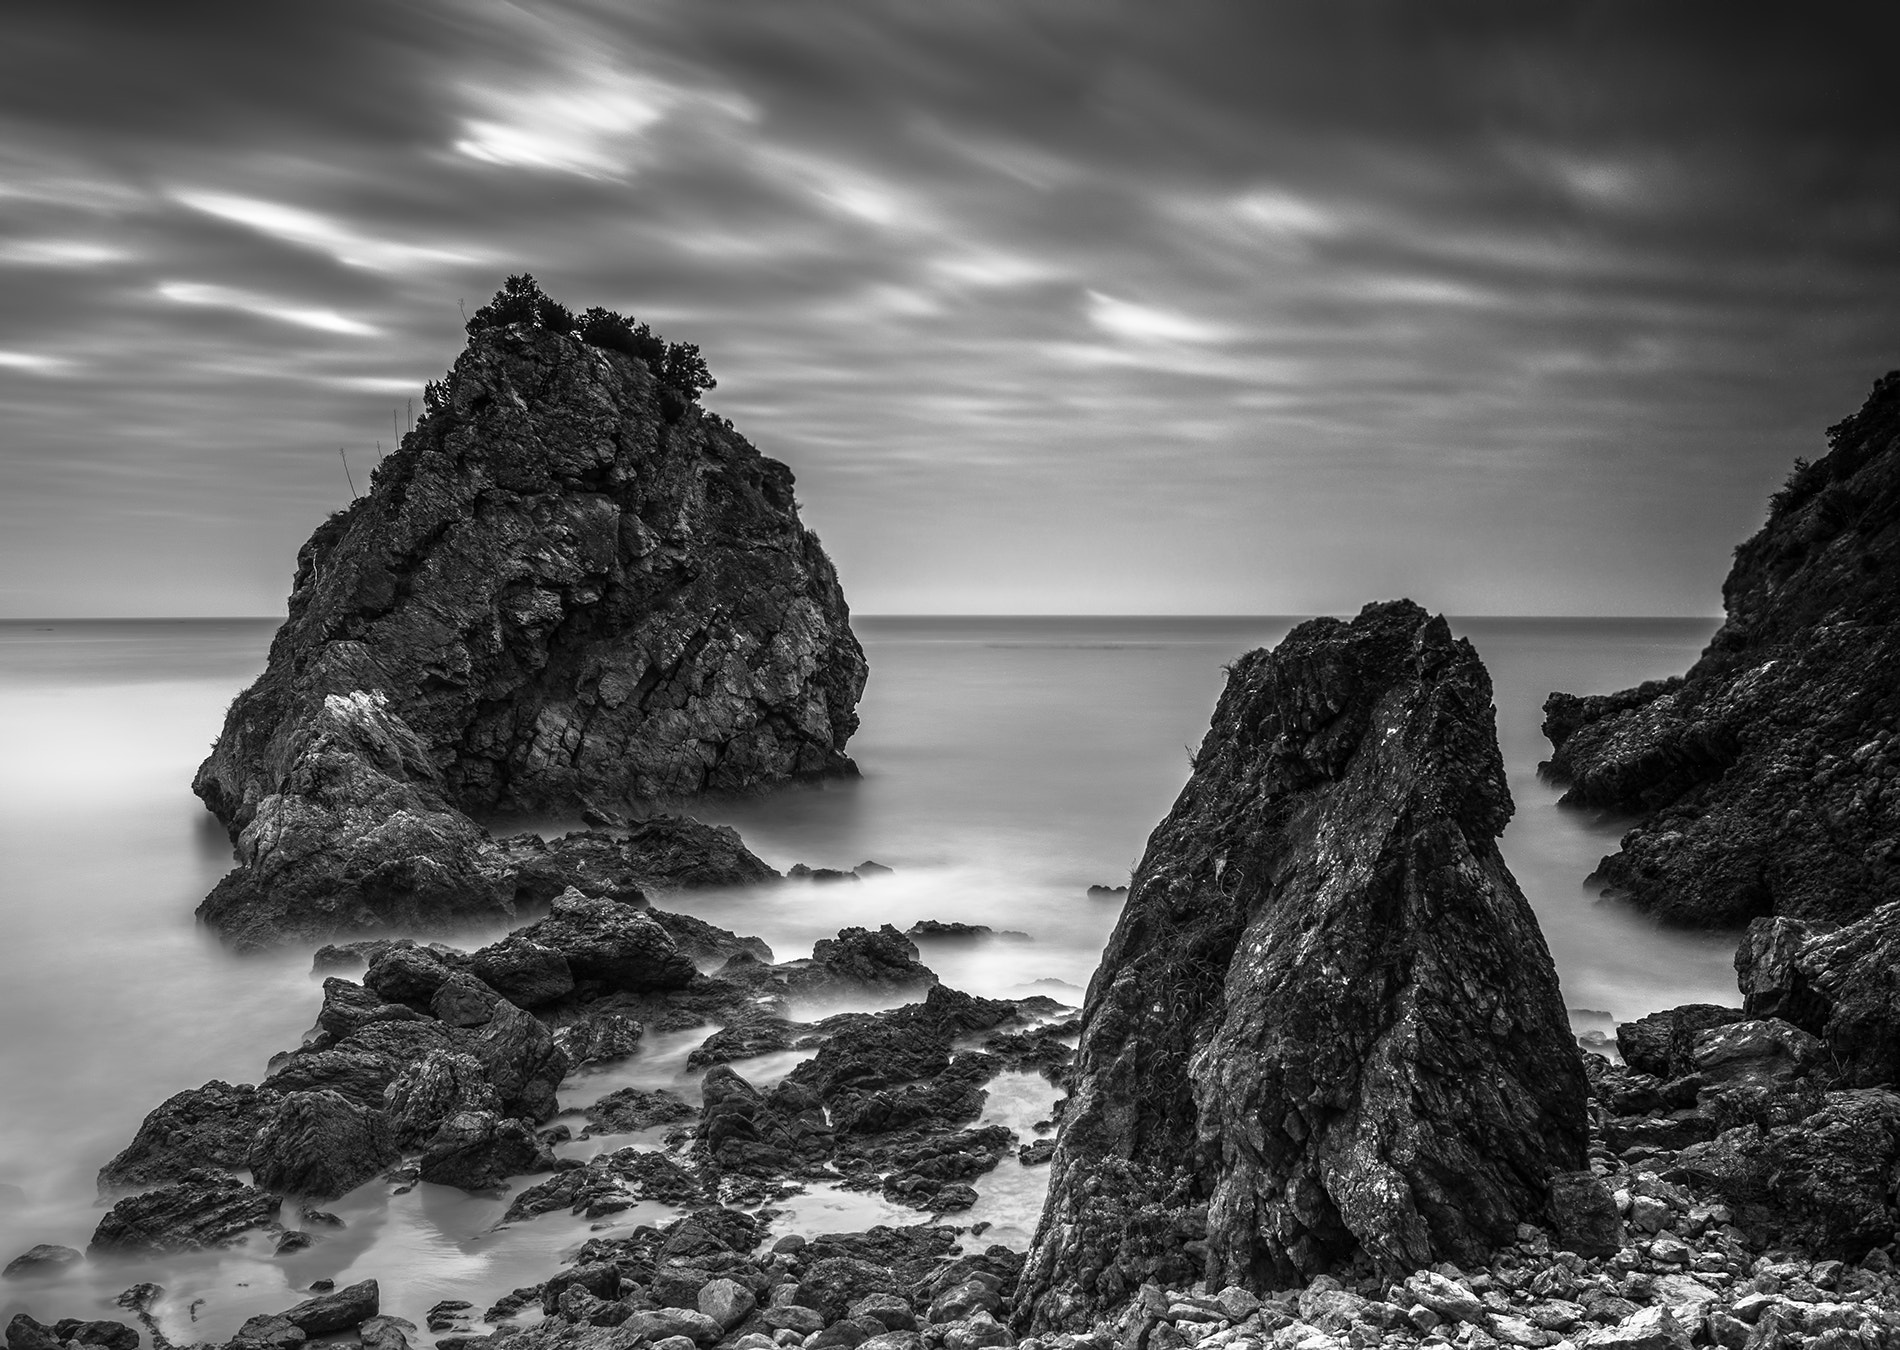 Photograph Lost paradise B/W by Emanuel Fernandes on 500px